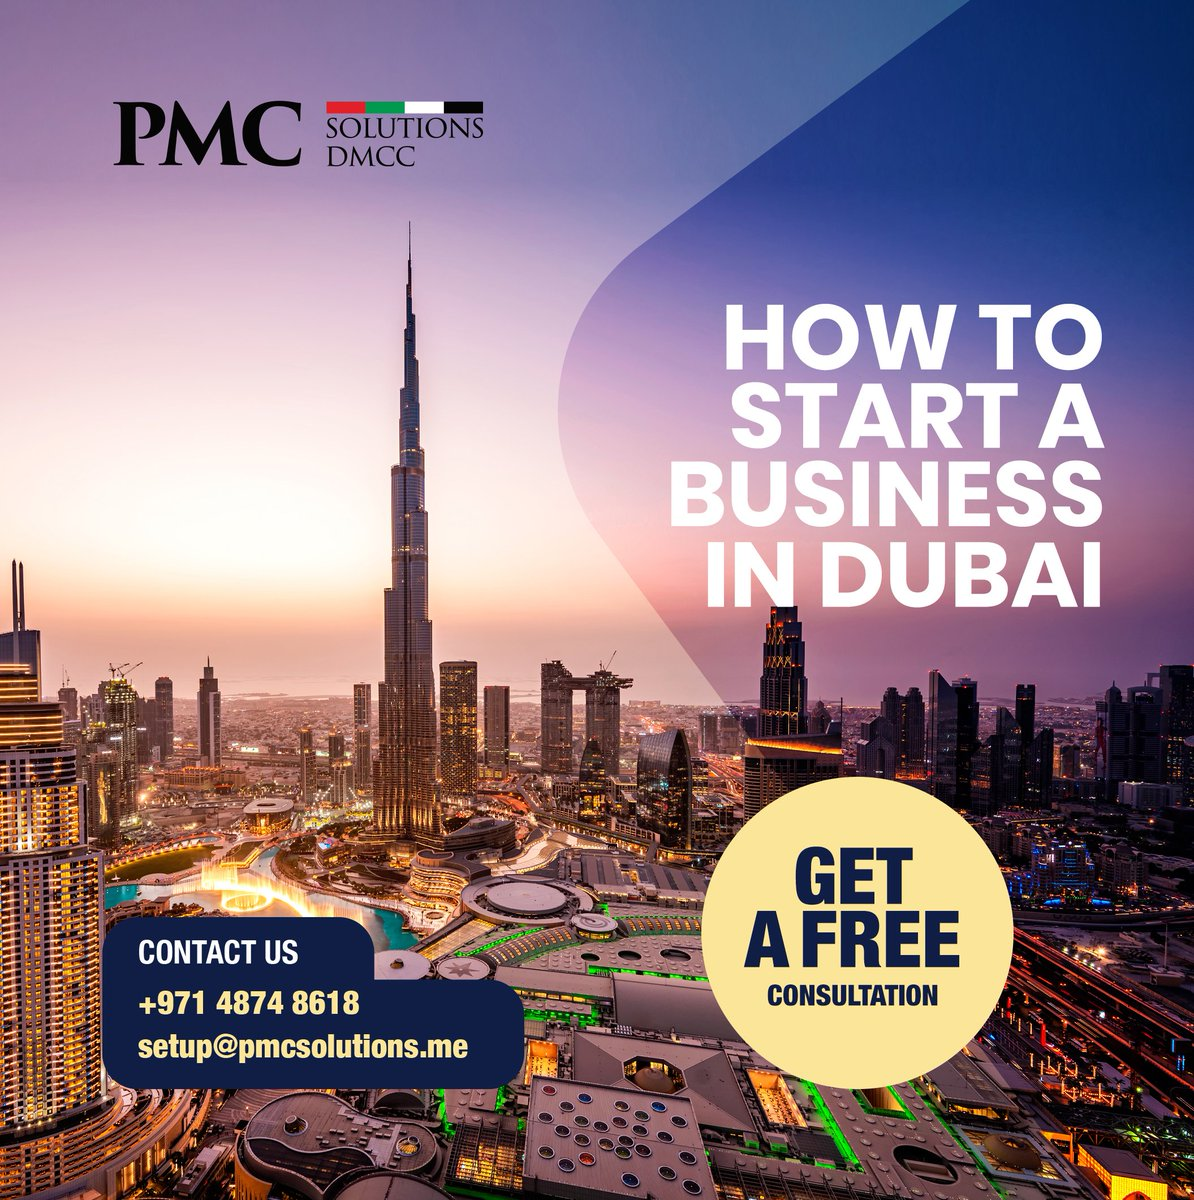 PMC Solutions DMCC (@PMC_DMCC) | Twitter